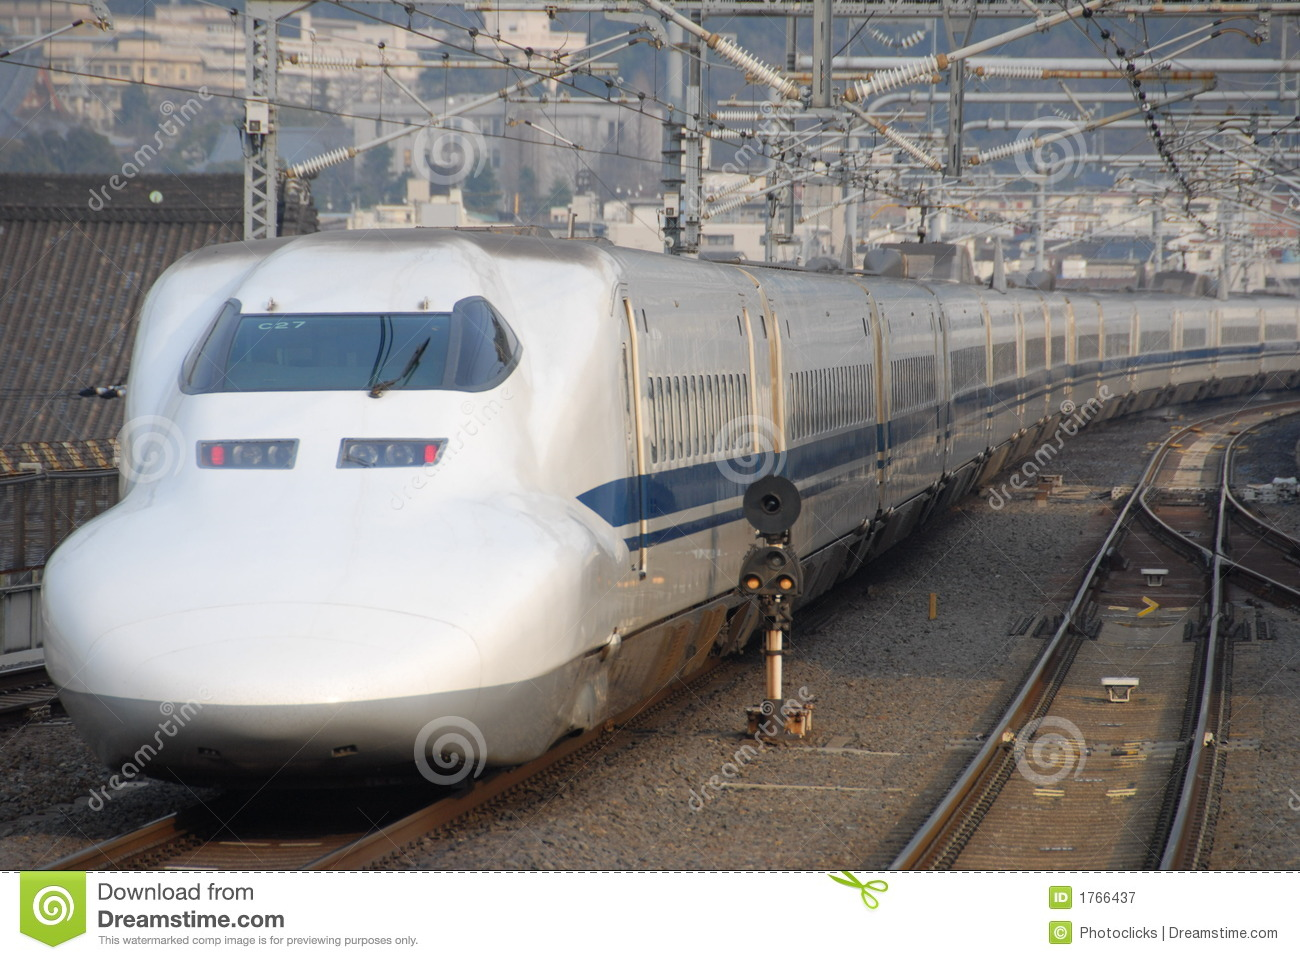 Bullet train videos free download